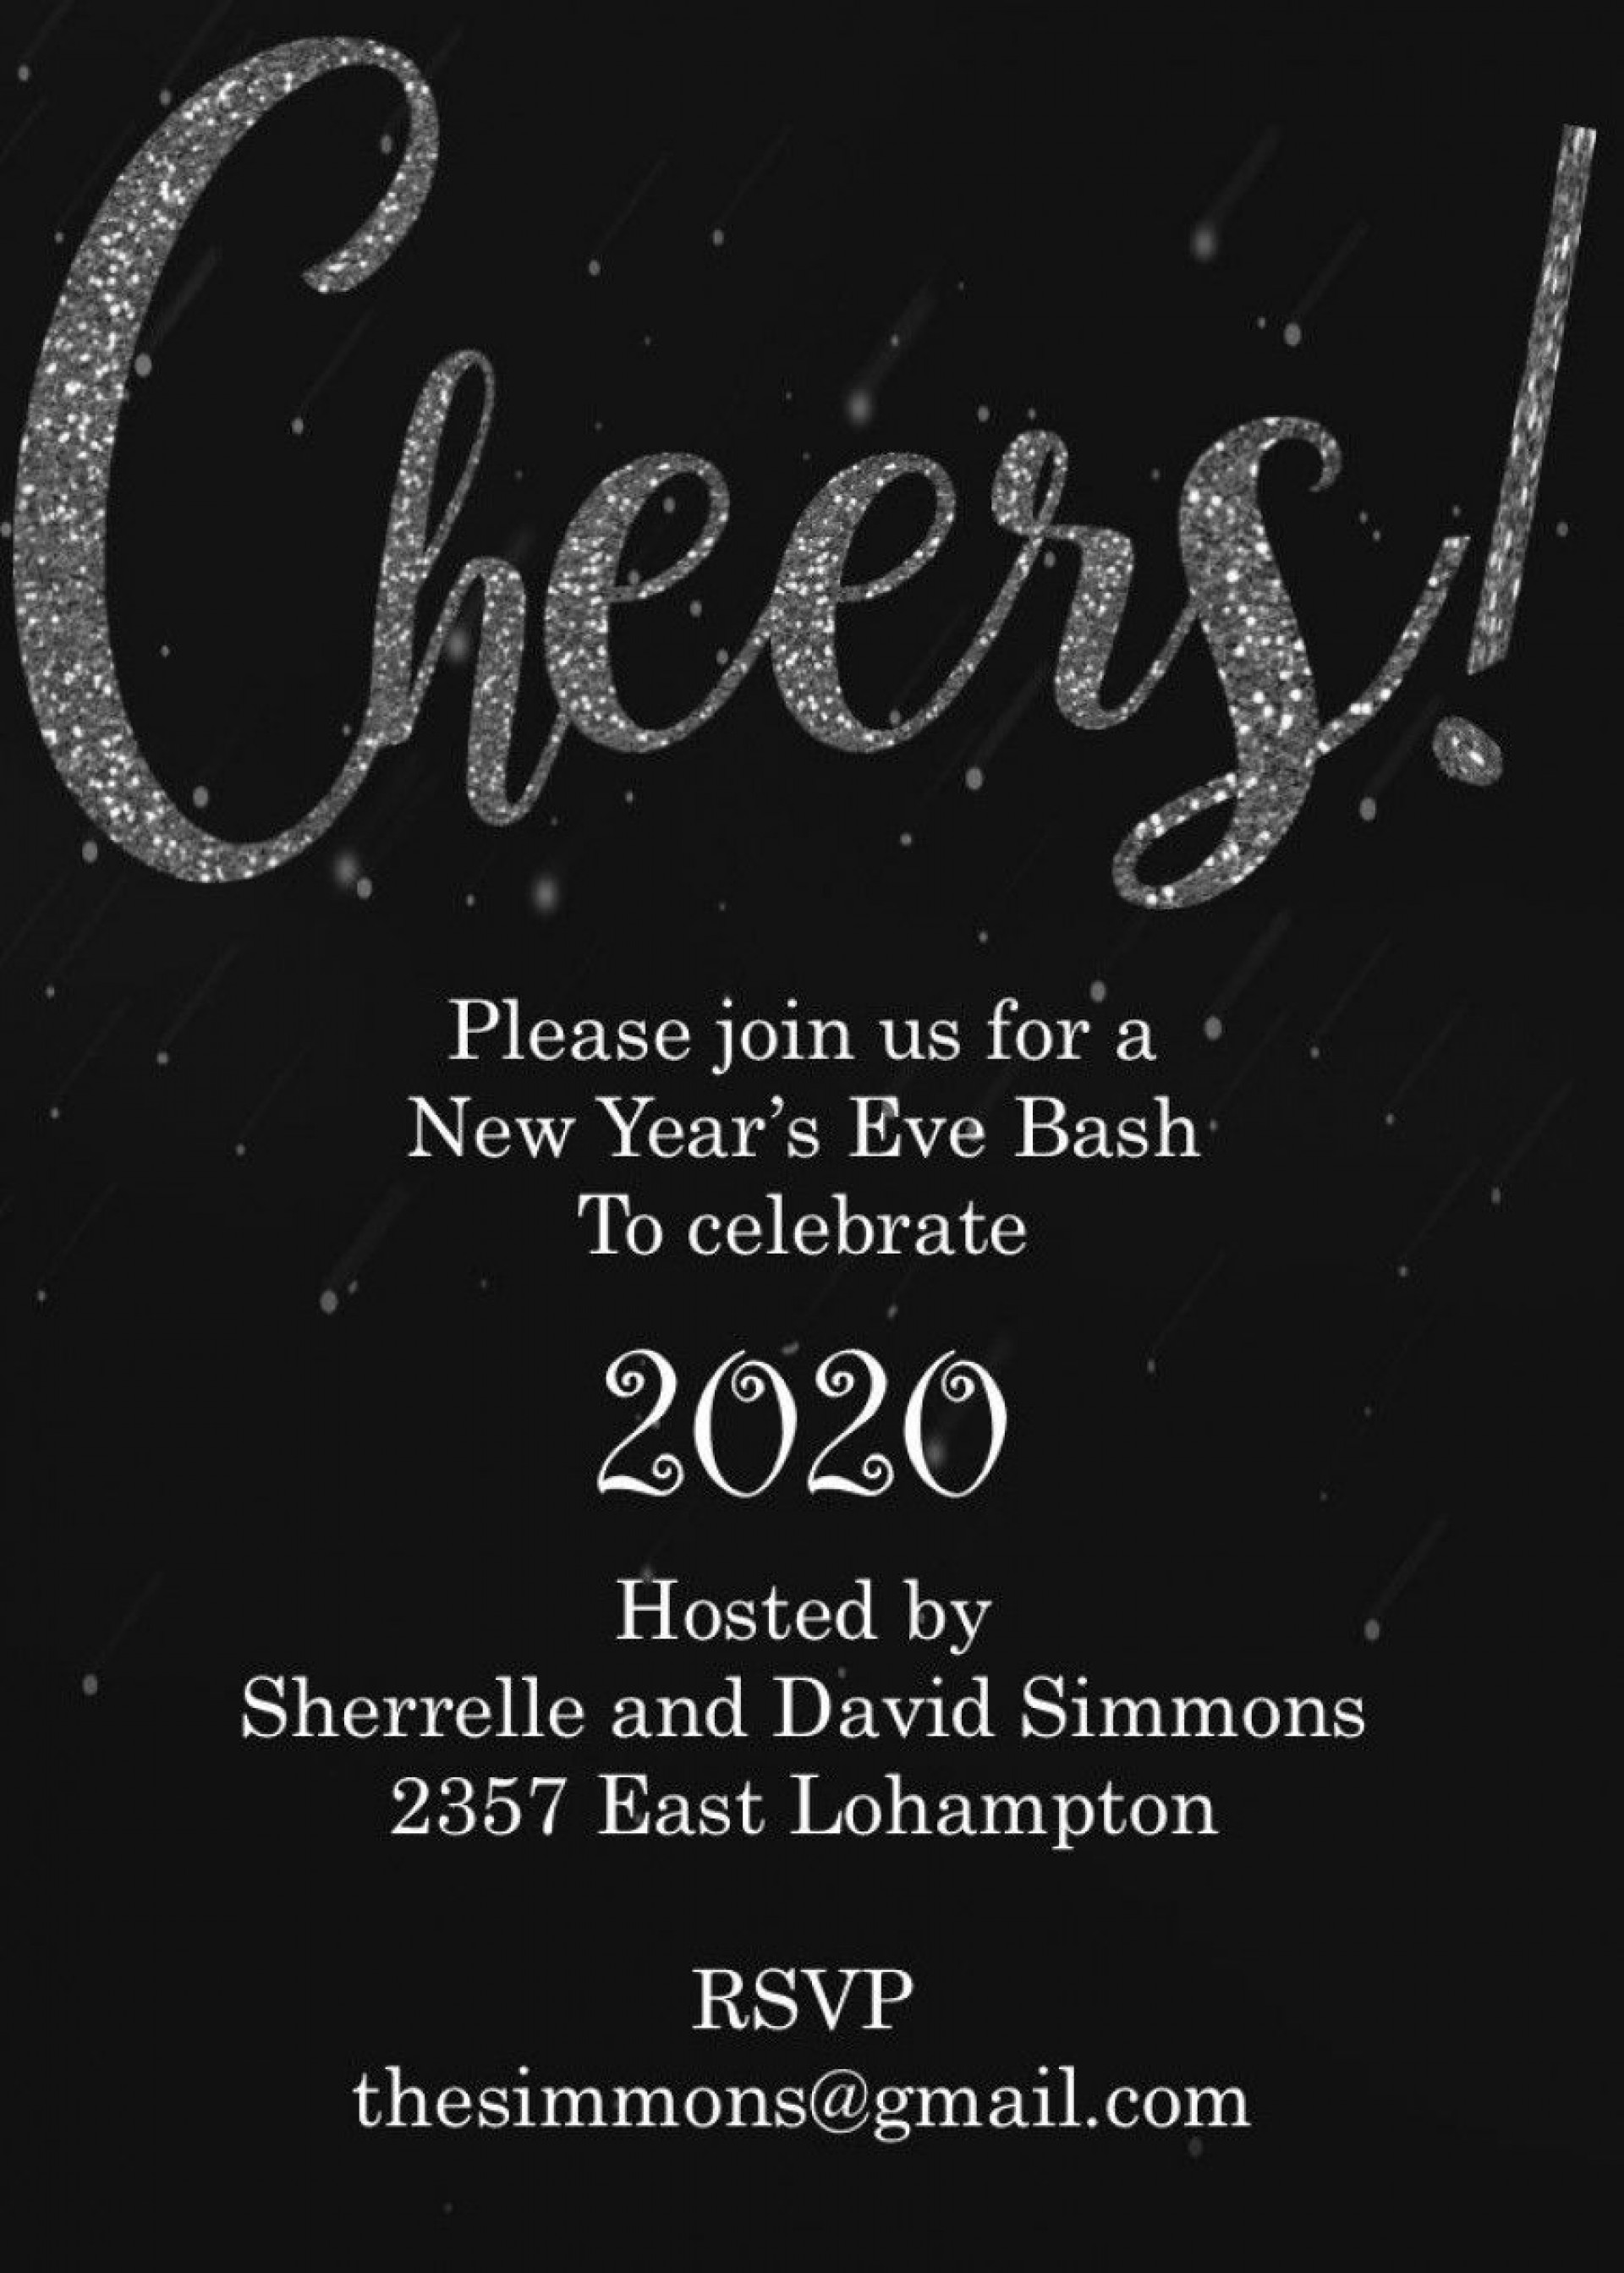 004 Formidable New Year Eve Invitation Template High Def  Party Free Word1920